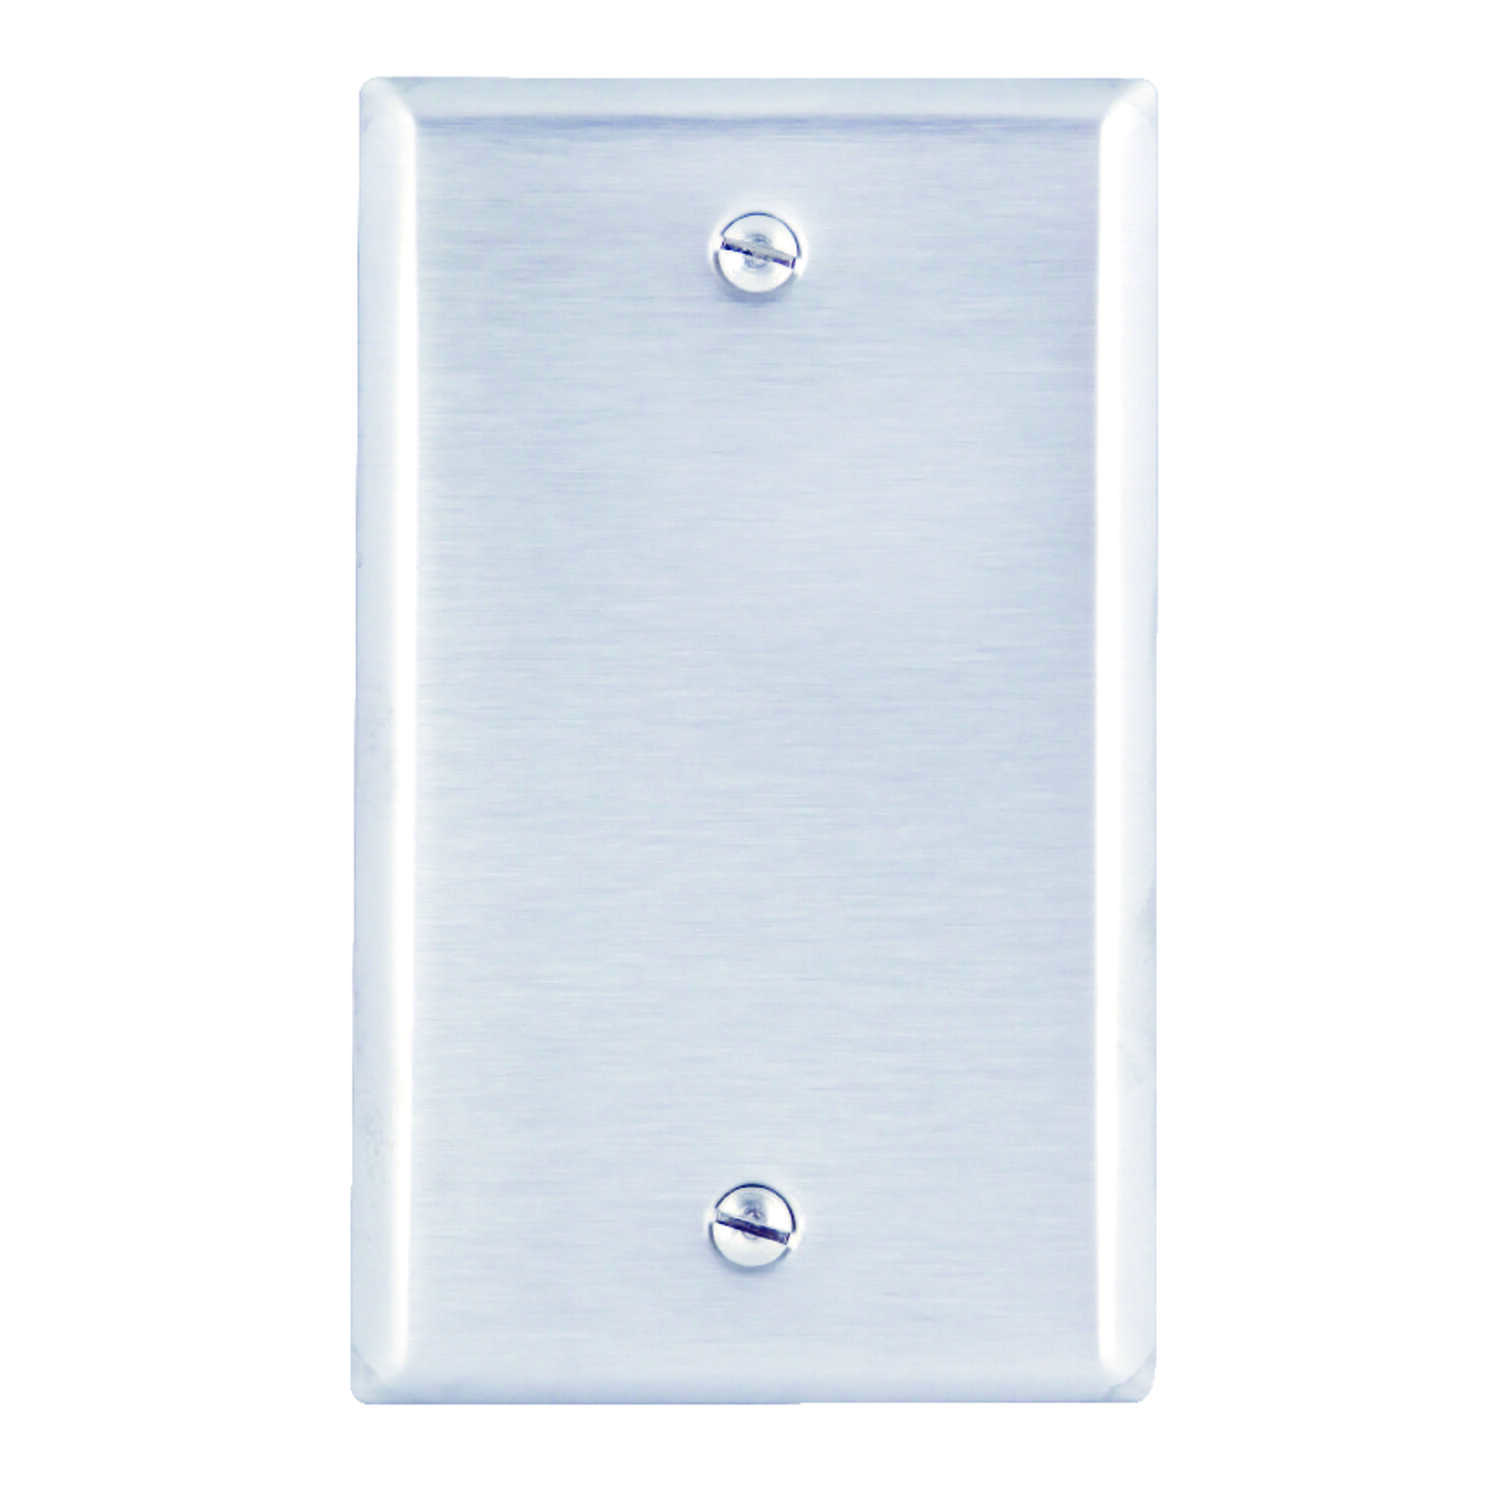 Leviton  Silver  1 gang Stainless Steel  Wall Plate  1 pk Blank